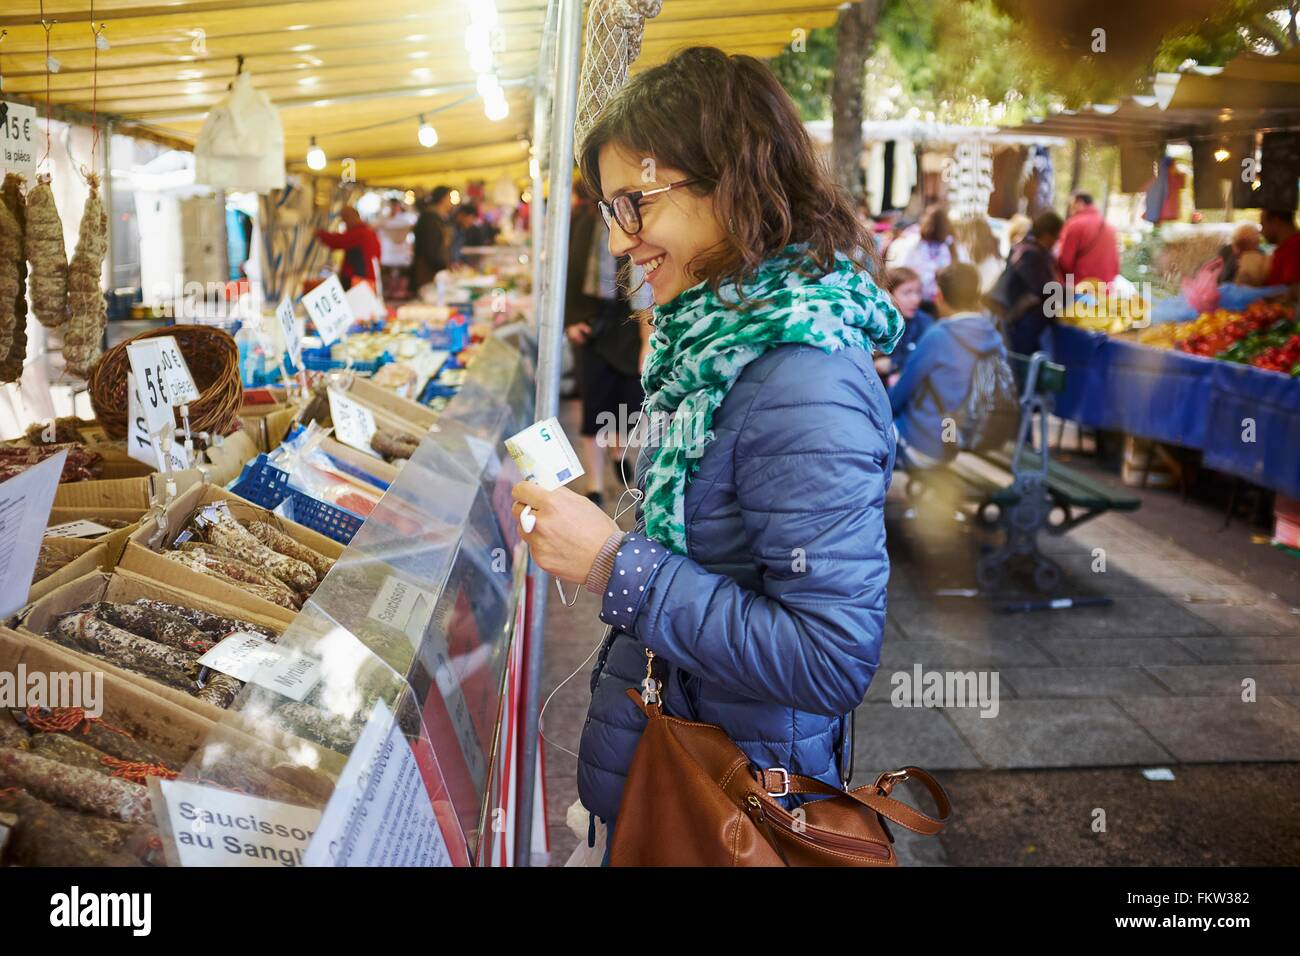 Young woman buying fresh food at market stall - Stock Image